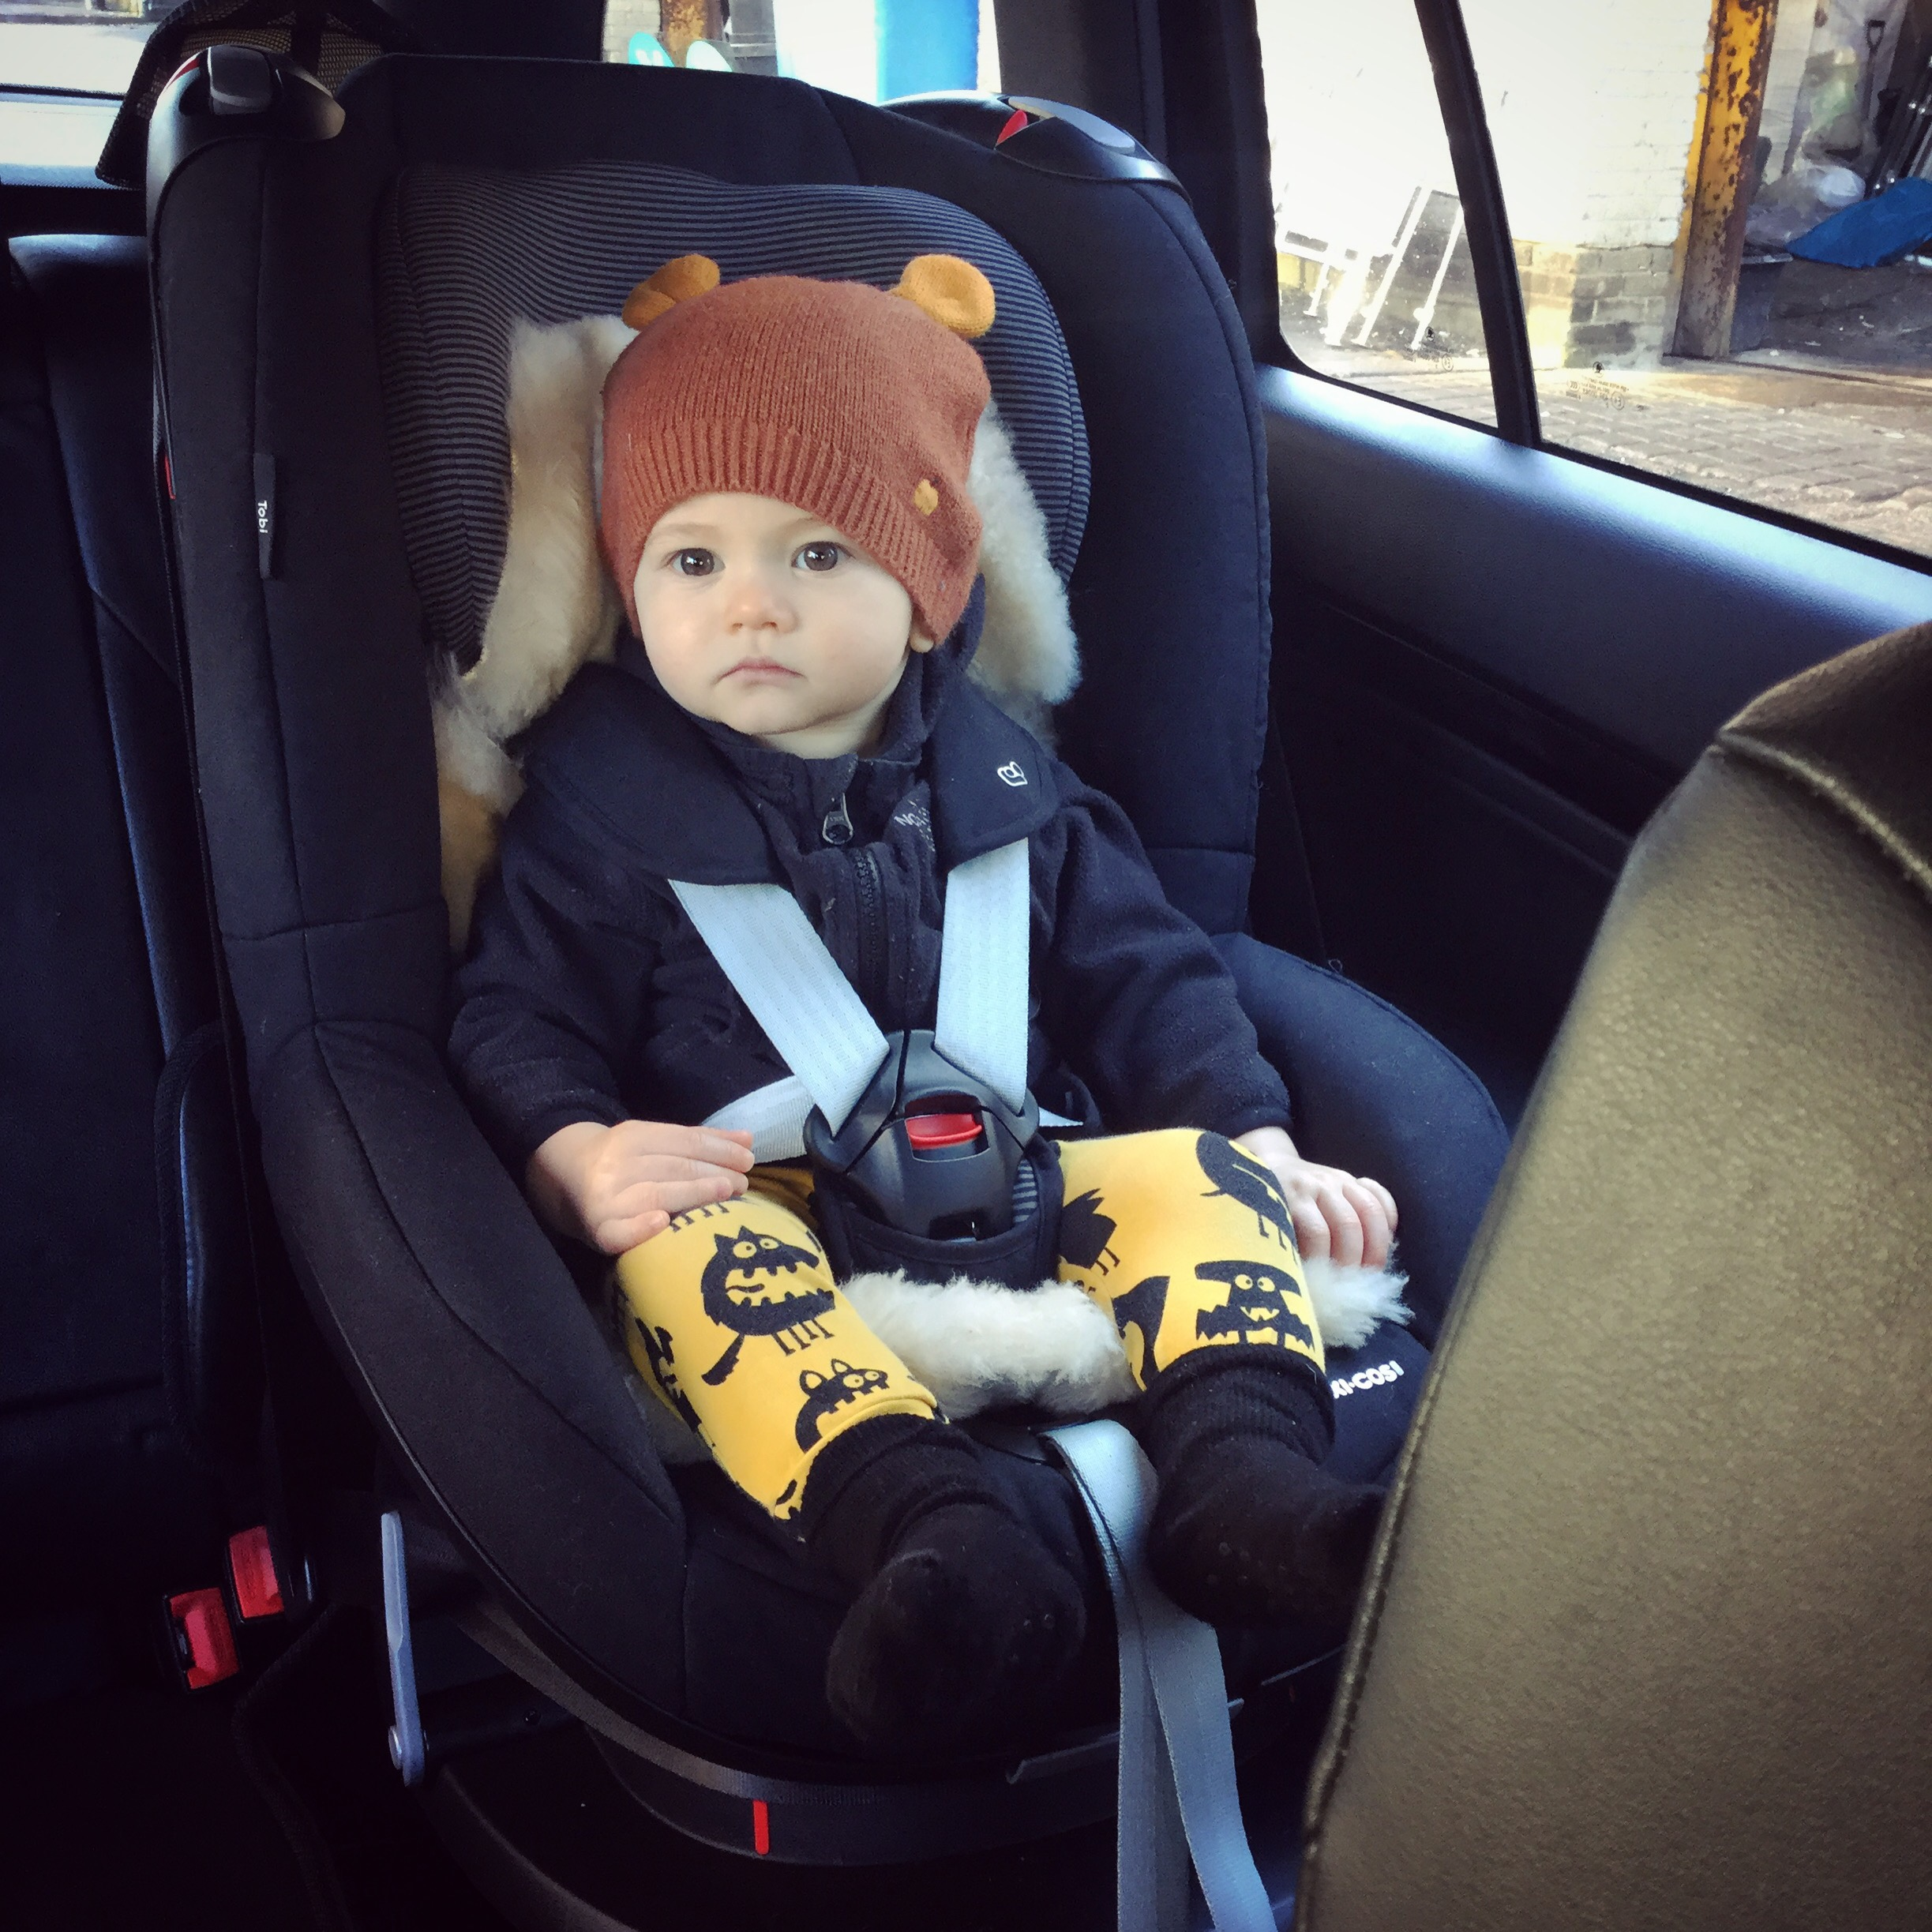 Maxi Cosi Tobi - Seat Belt Installed Toddler Car Seat - From approximately 9 months to 4 years old - reviewed by Frankie and the Lamb with a car sick baby!